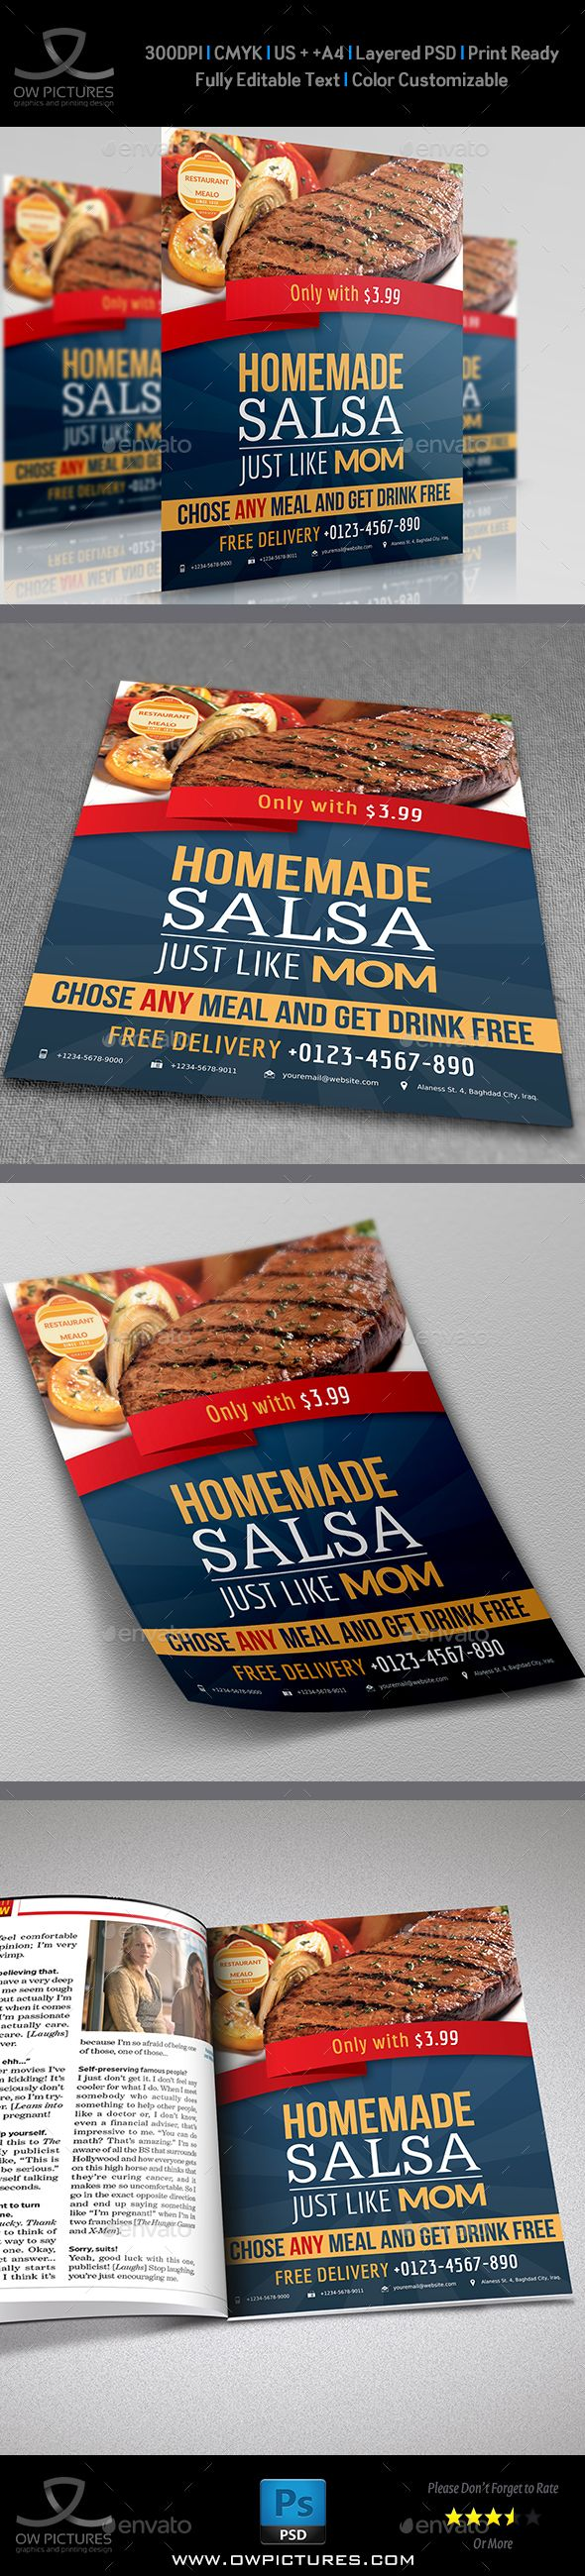 Restaurant Flyer Template Vol.3 - Restaurant Flyers